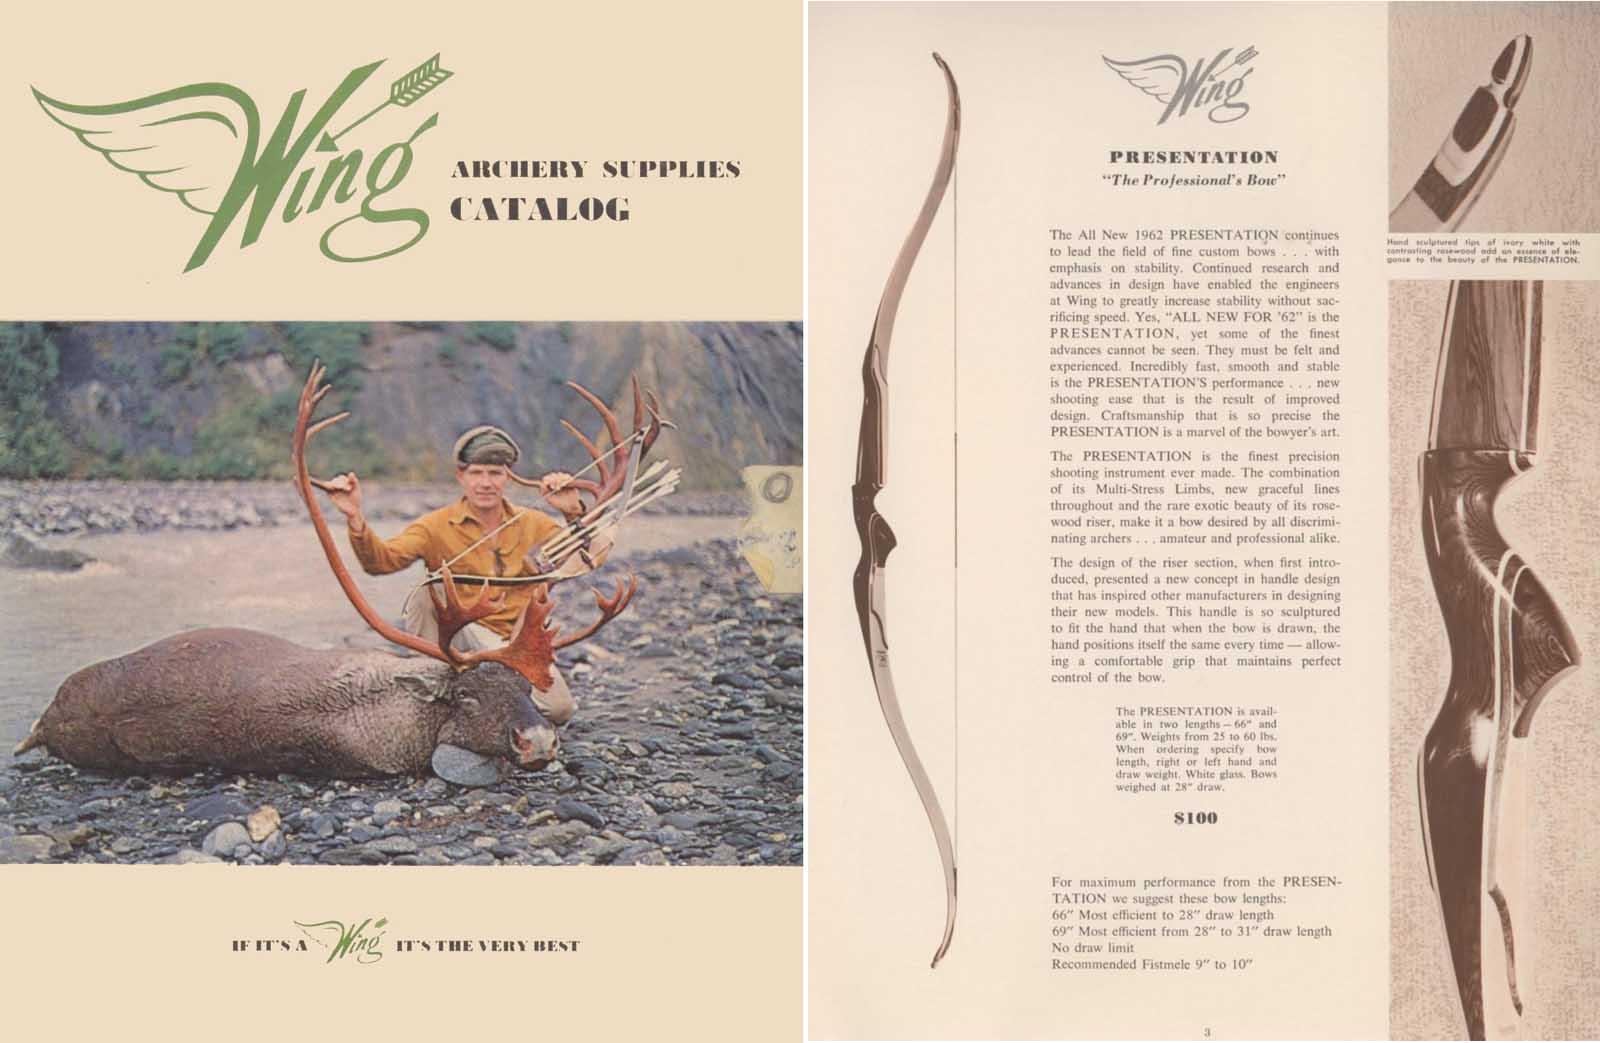 Wing Archery c1960 Catalog